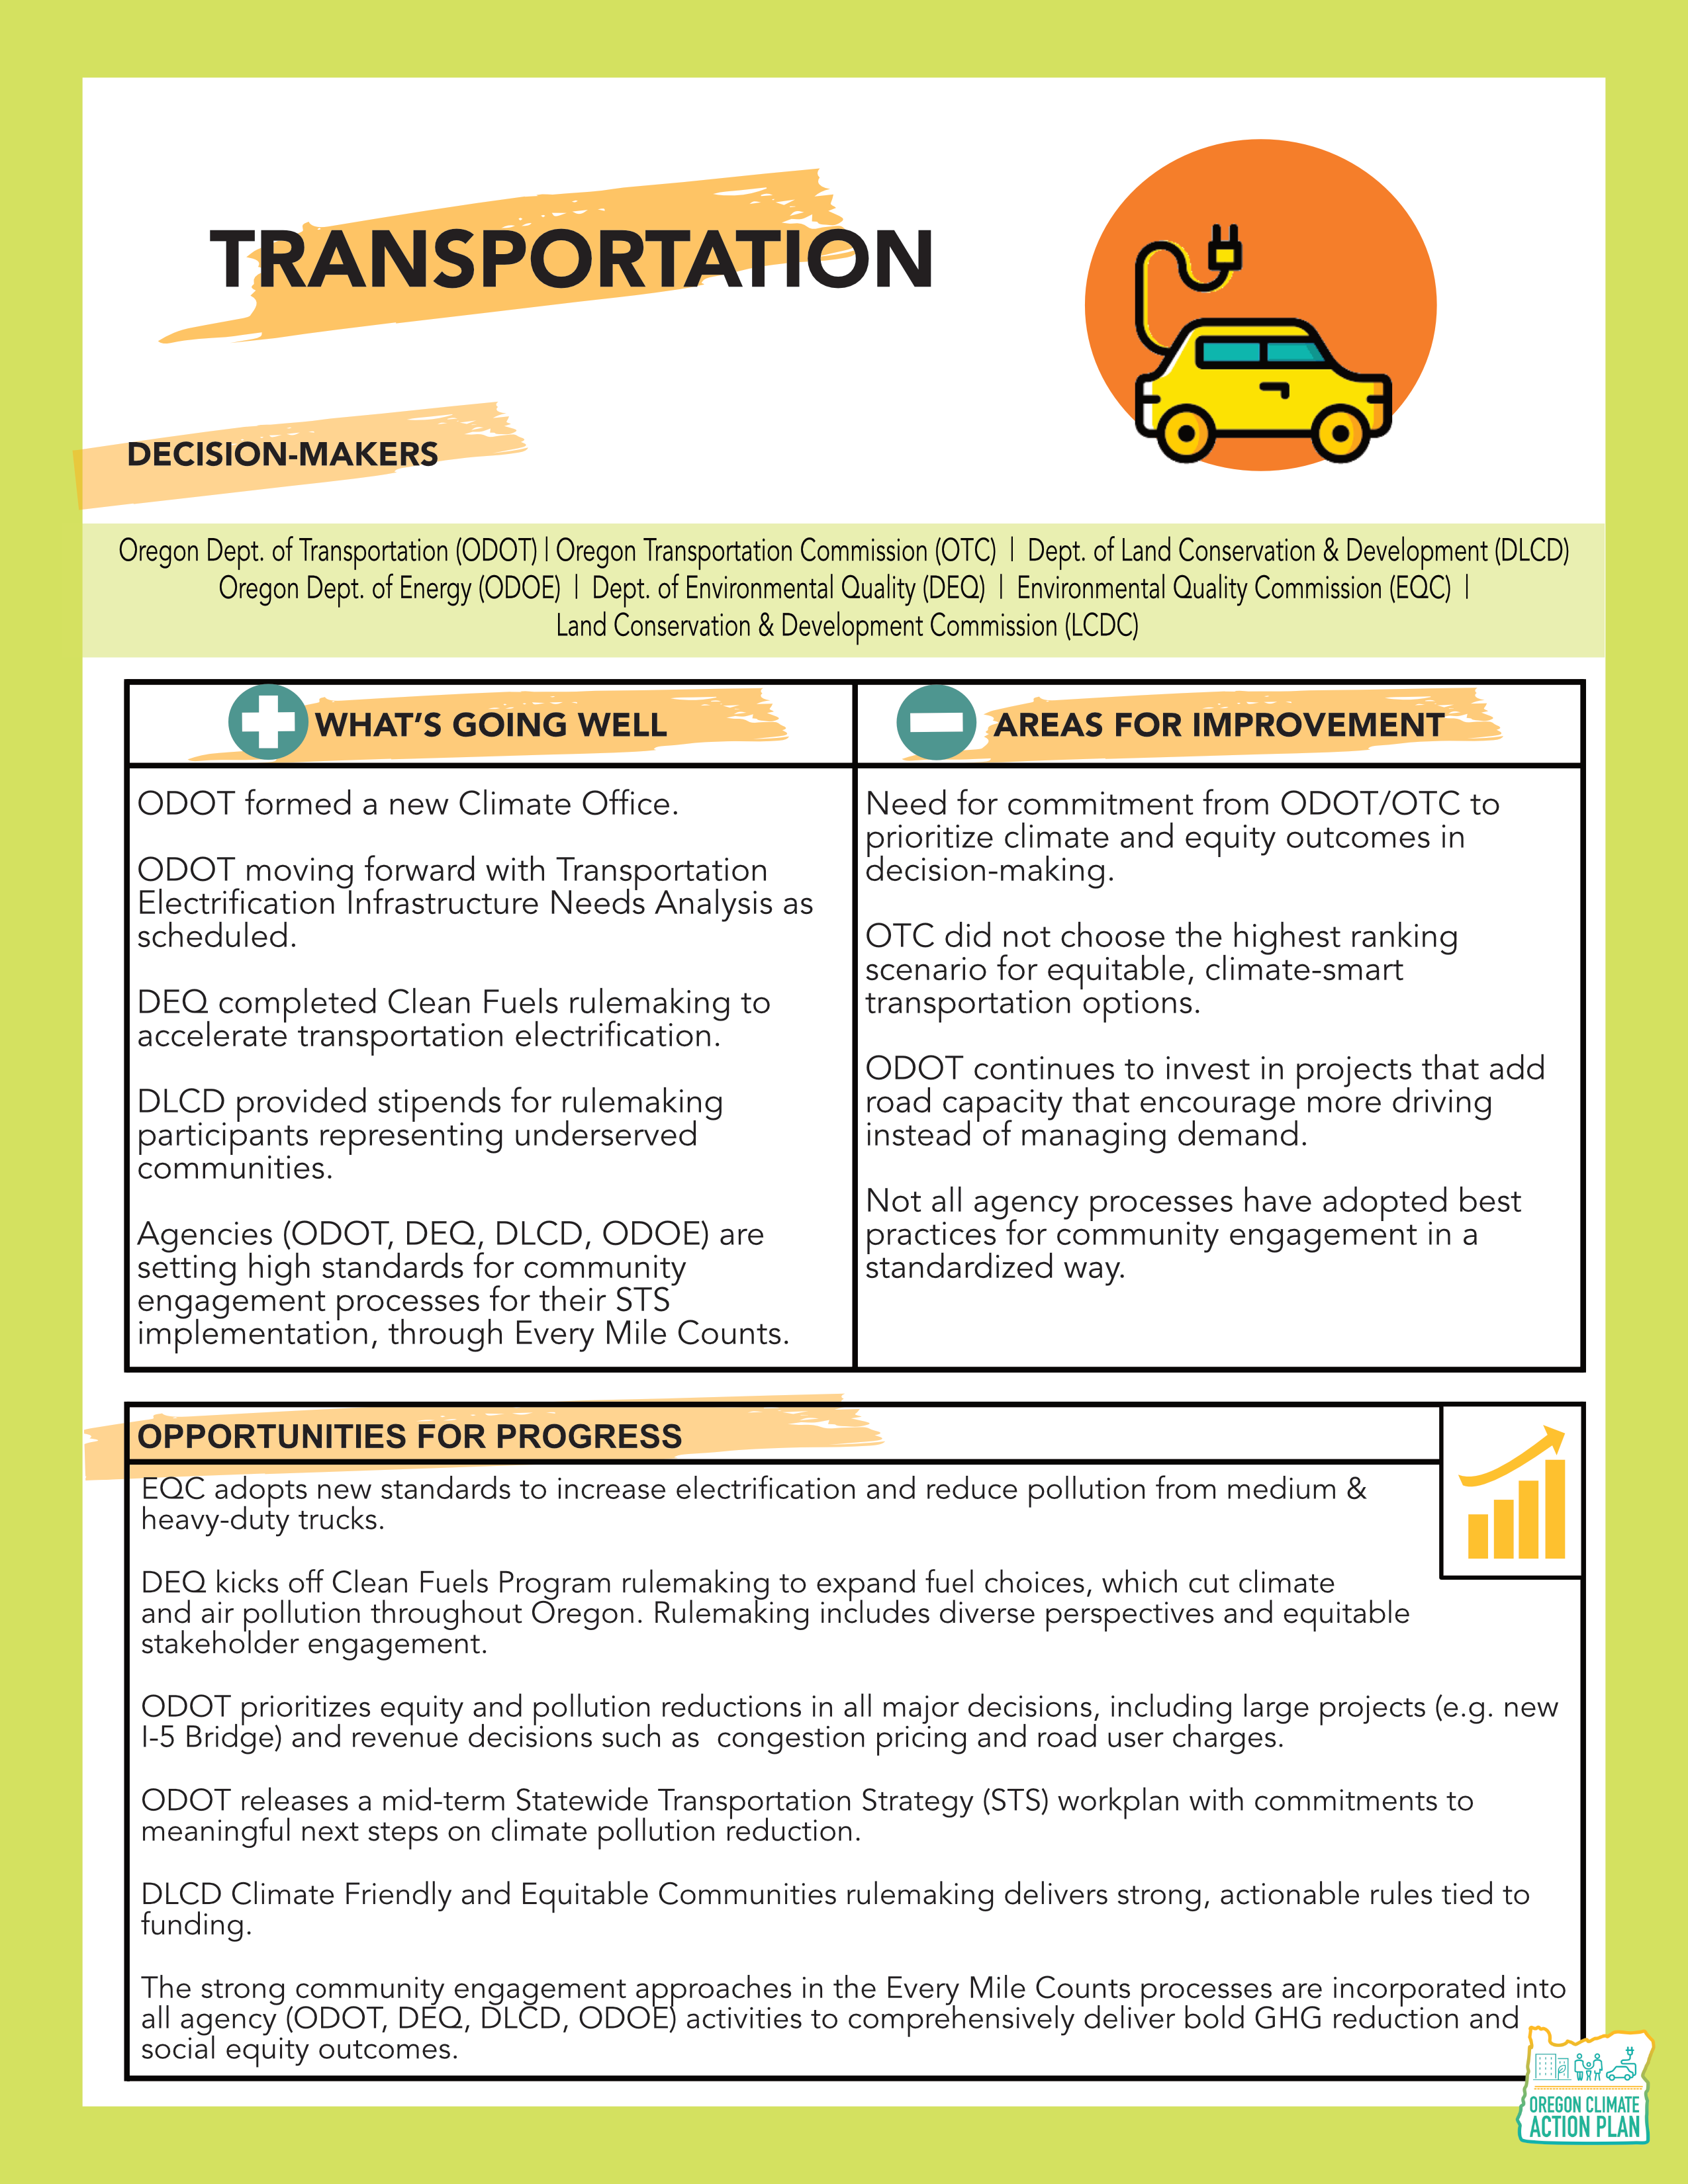 TRANSPORTATION_1PAGER_1.png